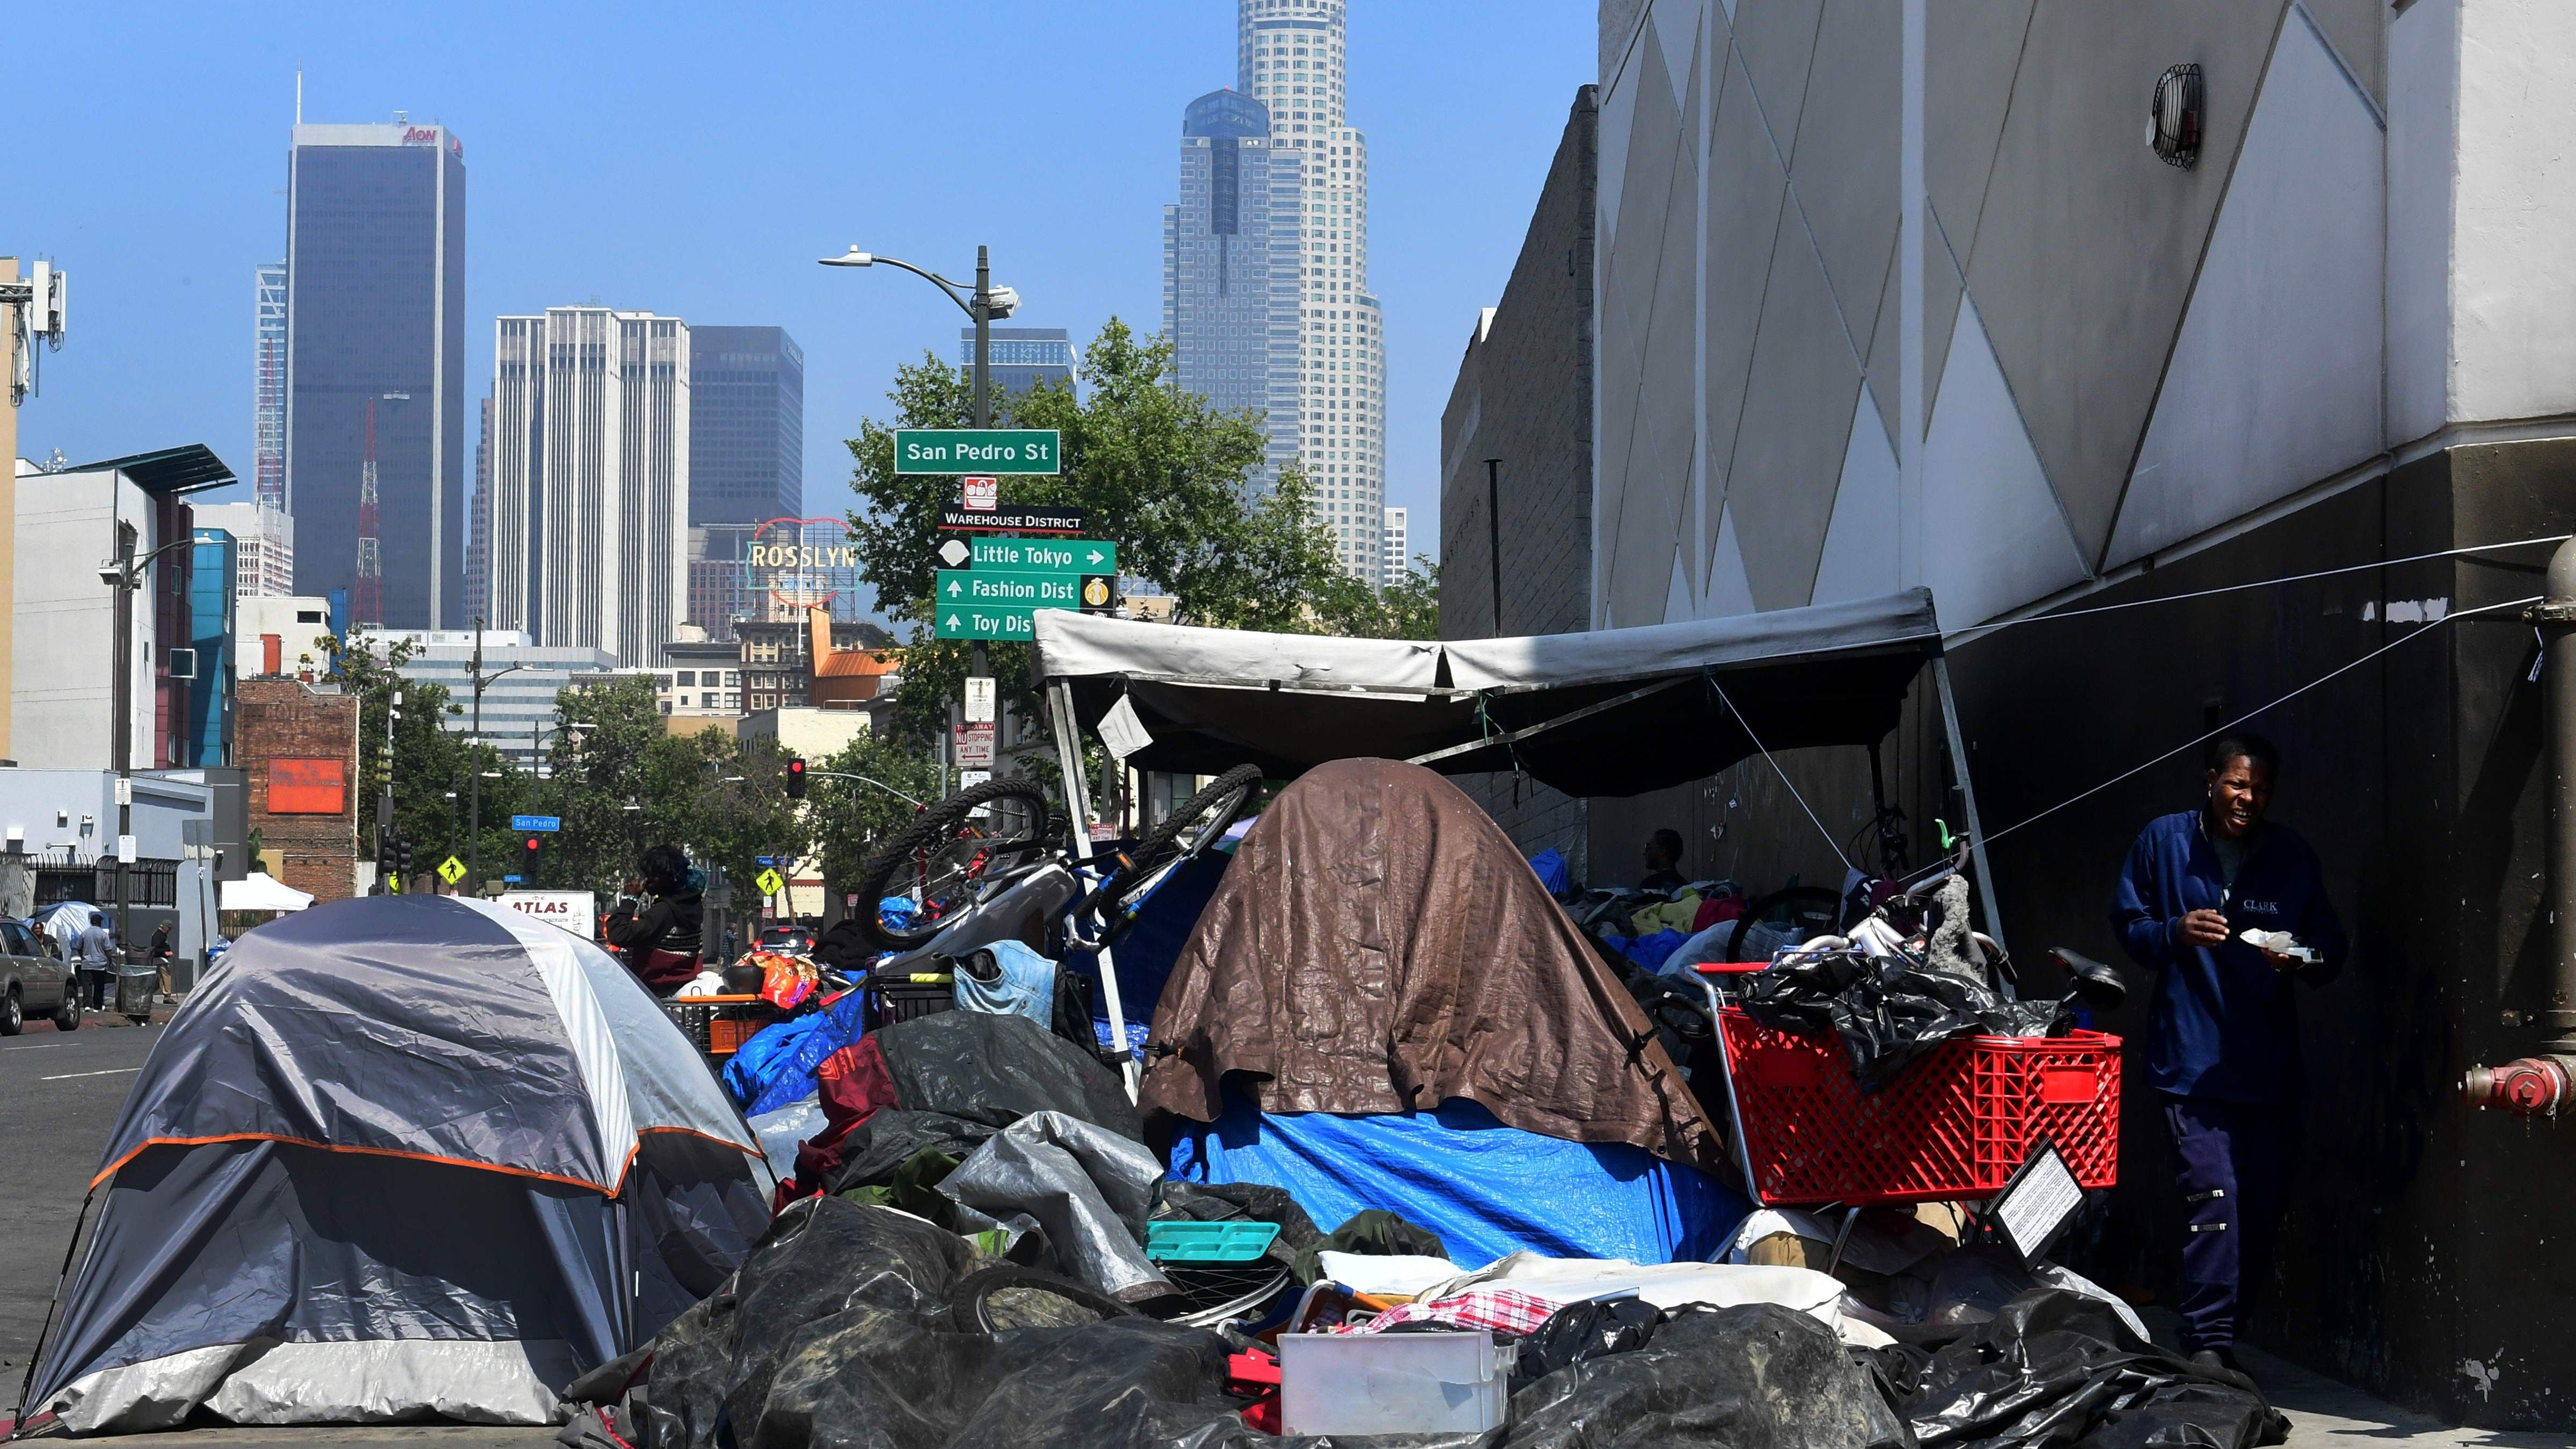 Los Angeles Homeless Housing Costs Run Higher Than Private Homes Los Angeles Skid Row Homeless People